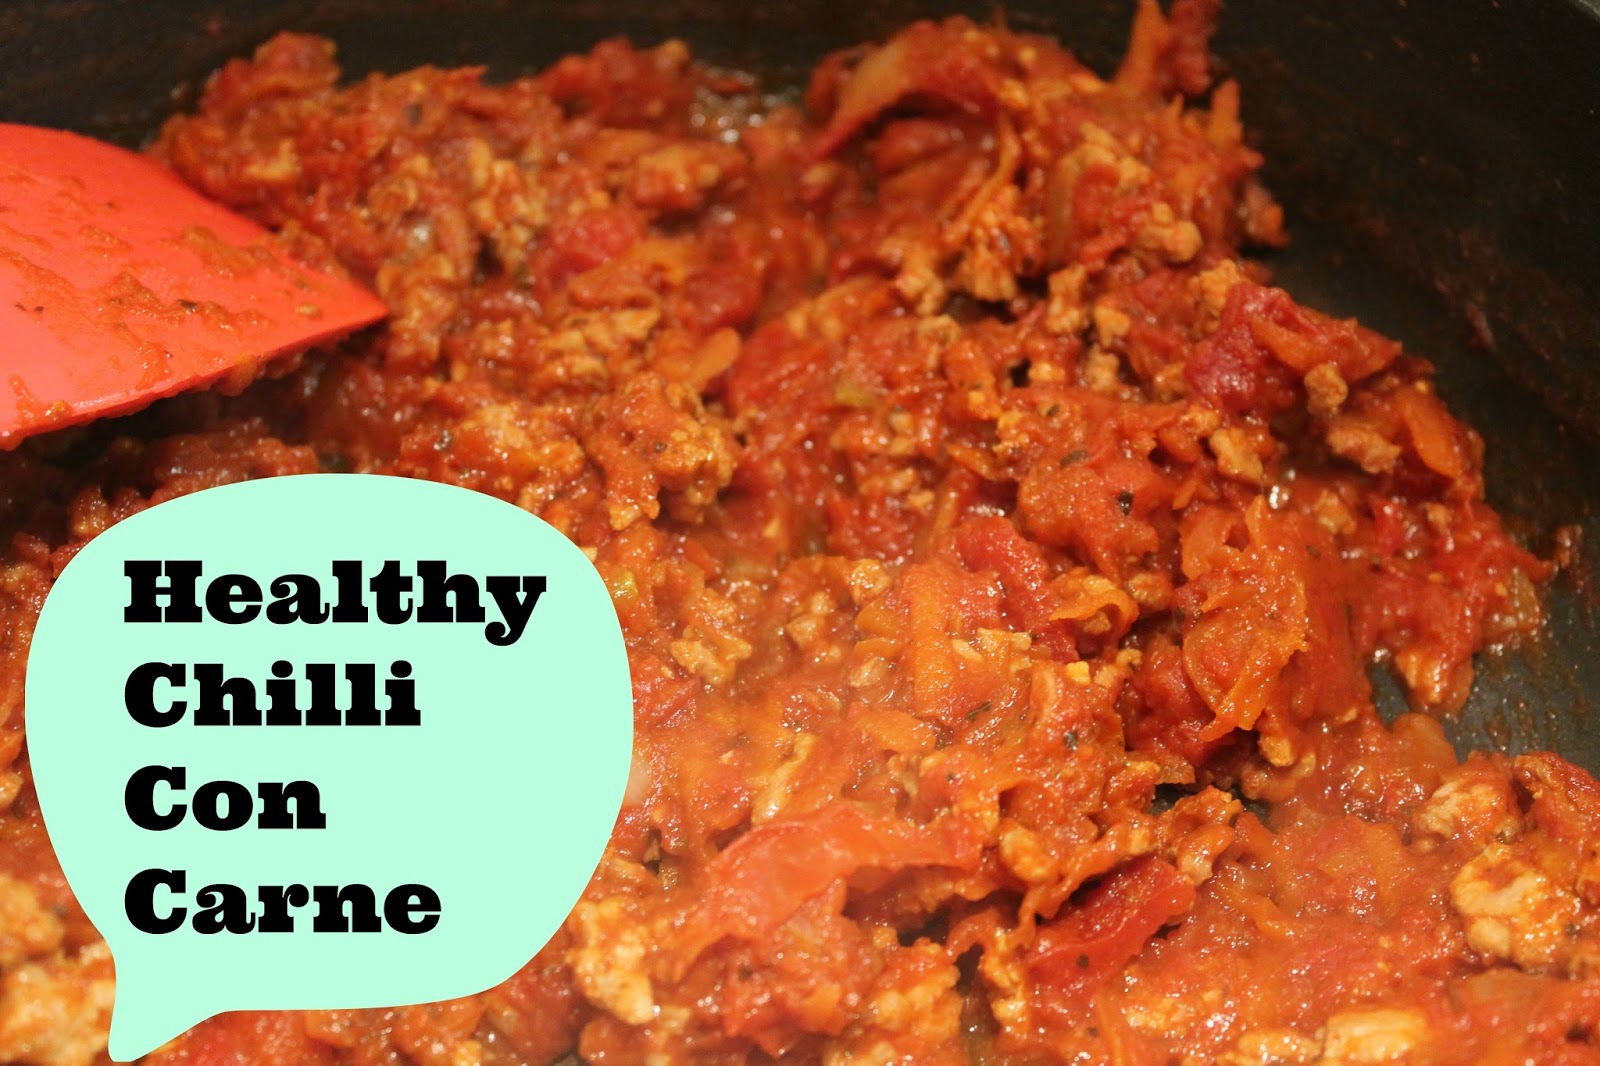 Healthy Chilli Con Carne Recipe - Beef or Turkey - Clean Eating